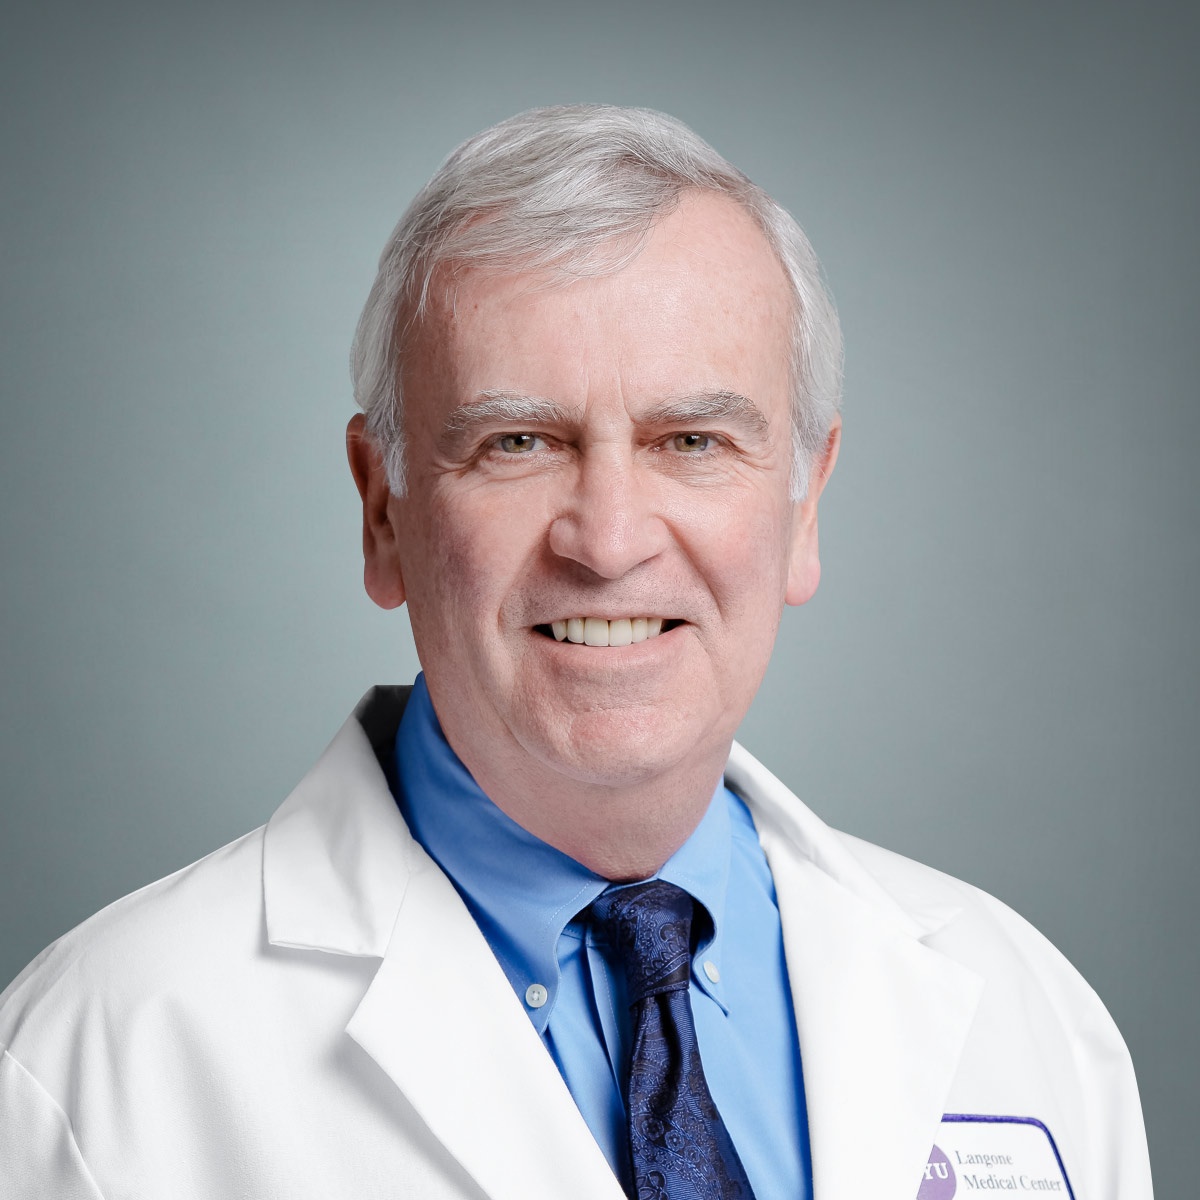 Bernard Crawford at [NYU Langone Medical Center]